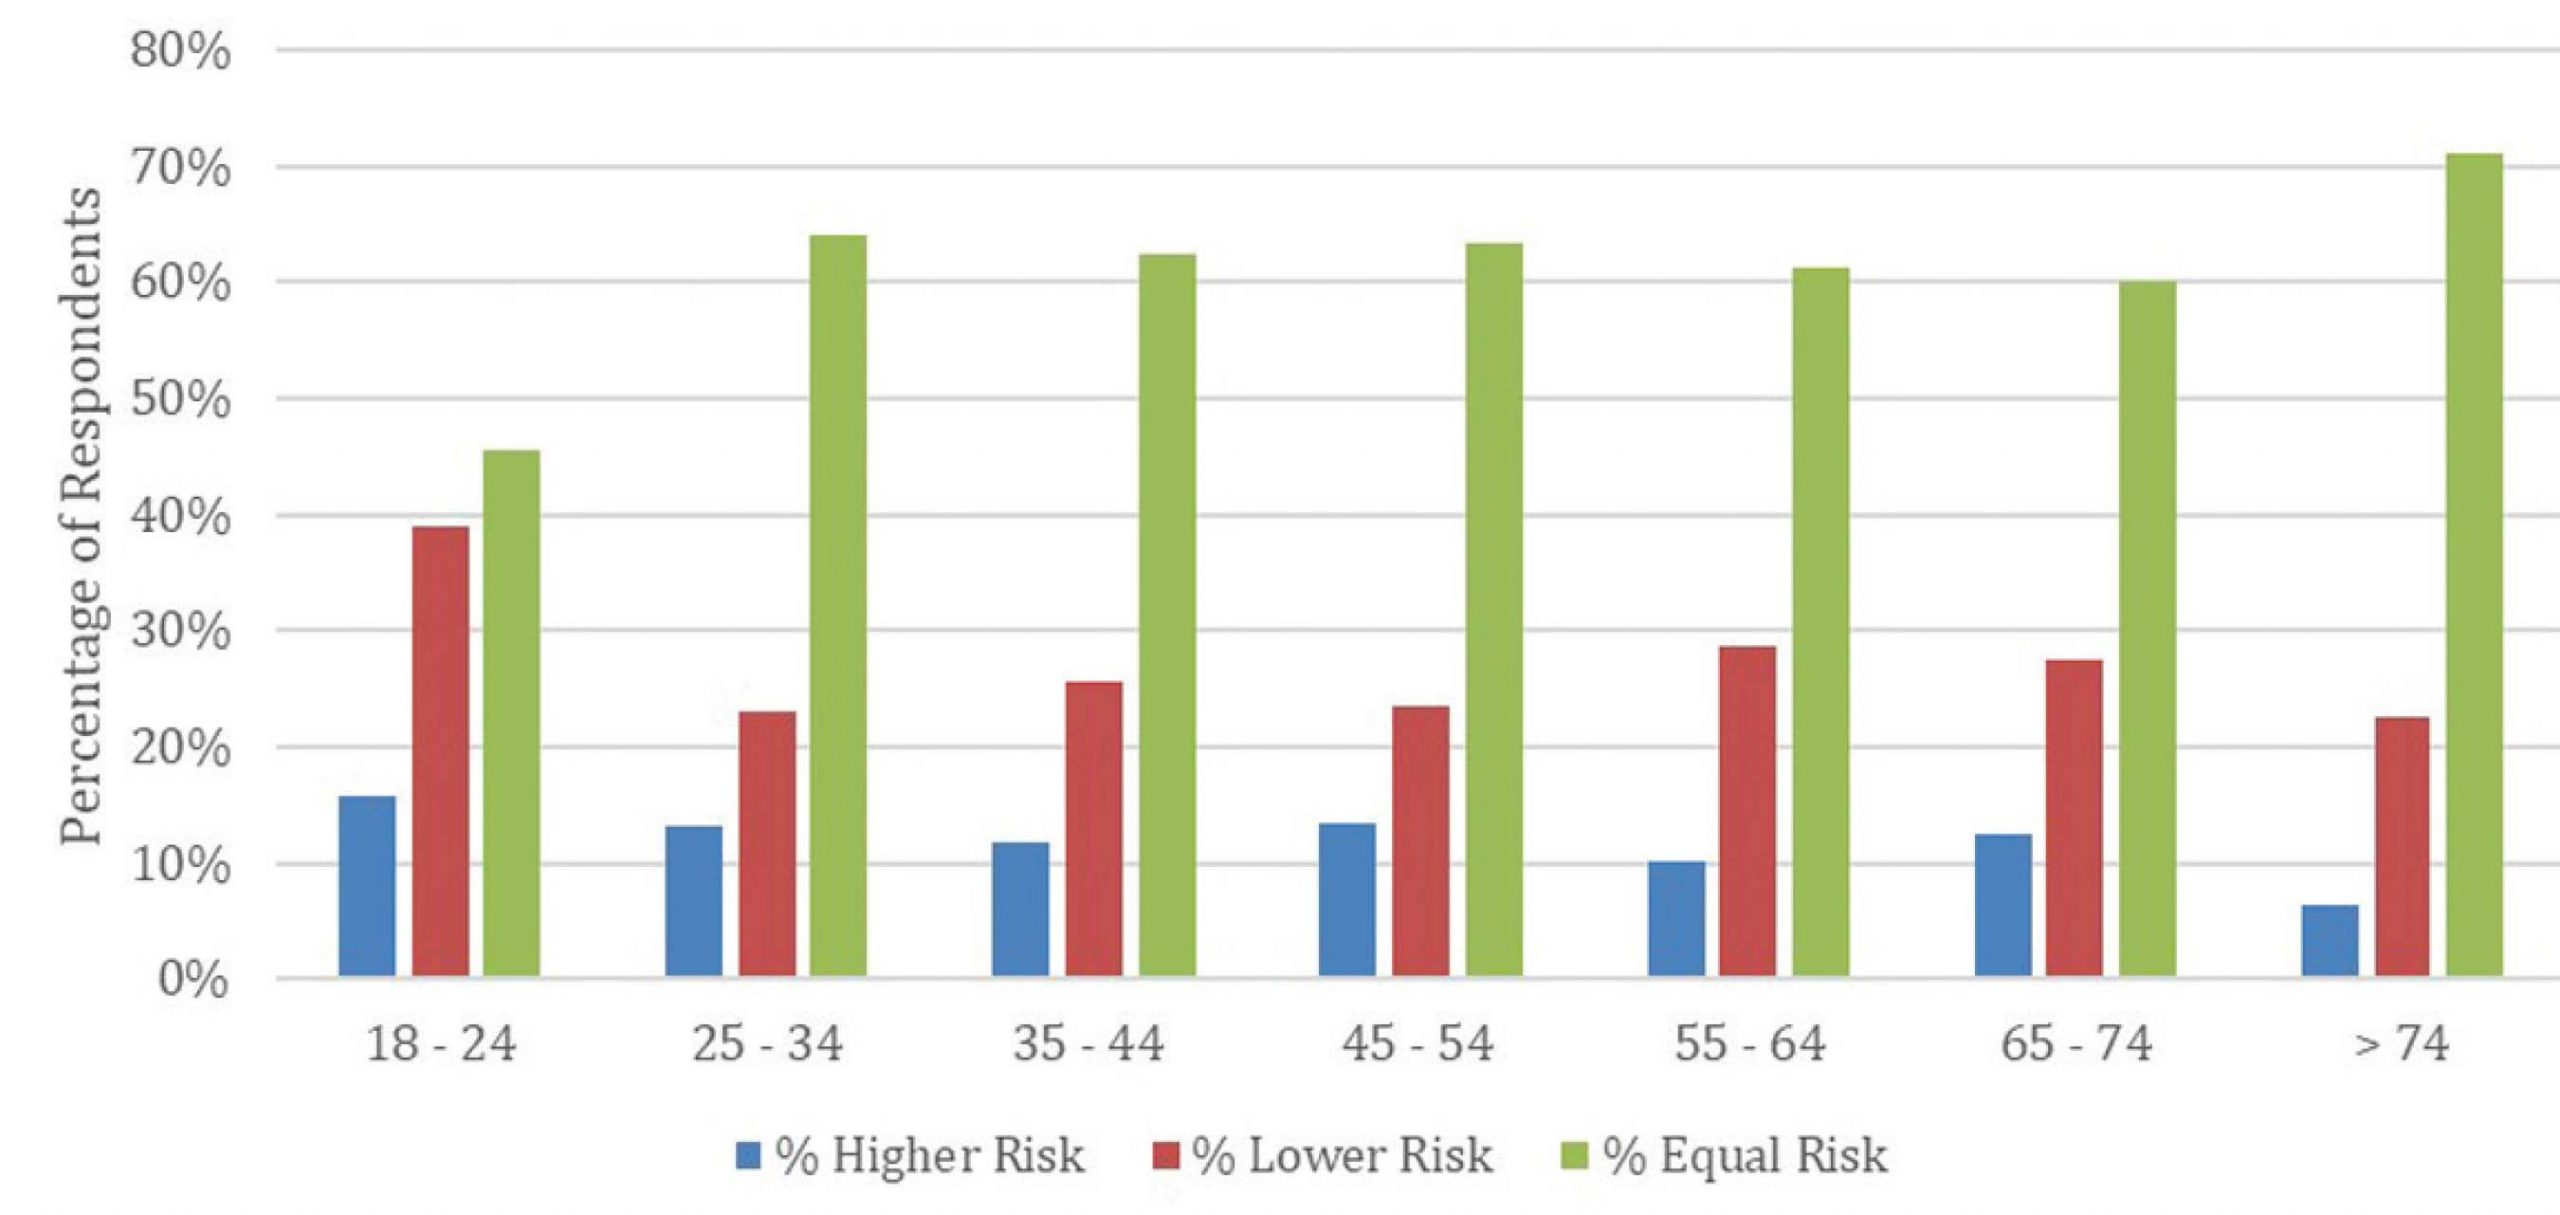 Survey Respondents' Perceived Risks of Foodborne Illness, PSR-Exempt Produce vs. PSR-Compliant Produce, by Age Group.